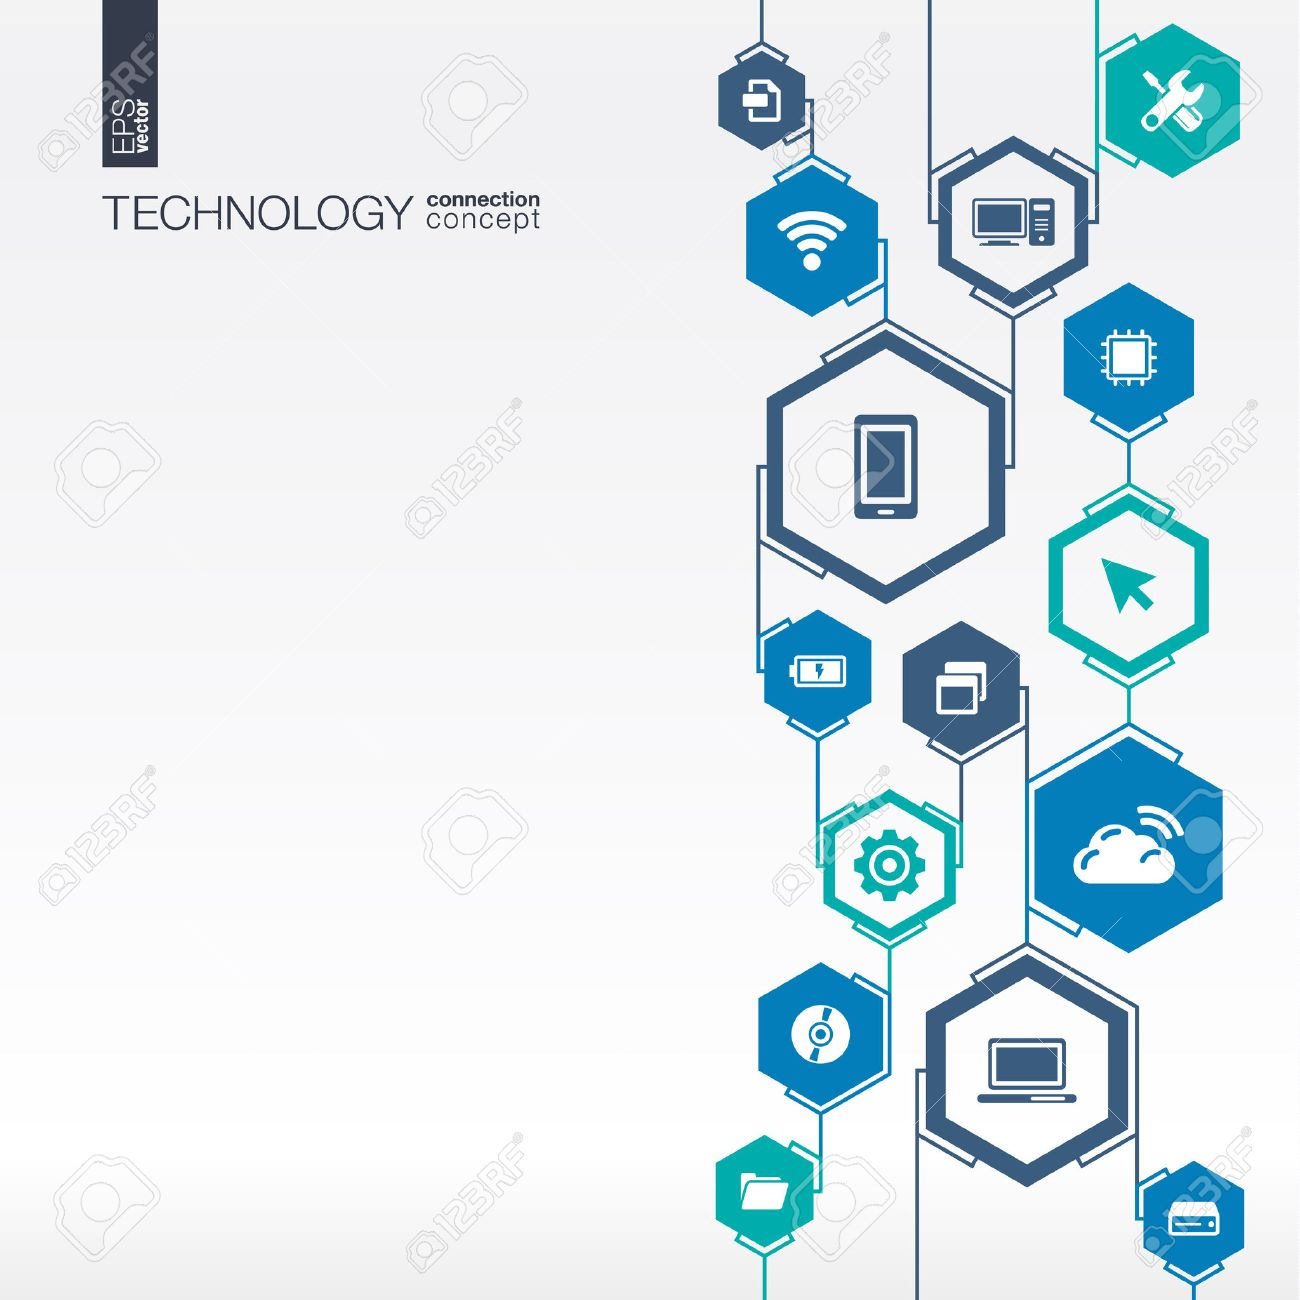 Technology network. Hexagon abstract background with lines, integrate flat icons. Connected symbols for digital, connect, communicate, social media and global concepts. Vector interactive illustration Stock Vector - 43377675